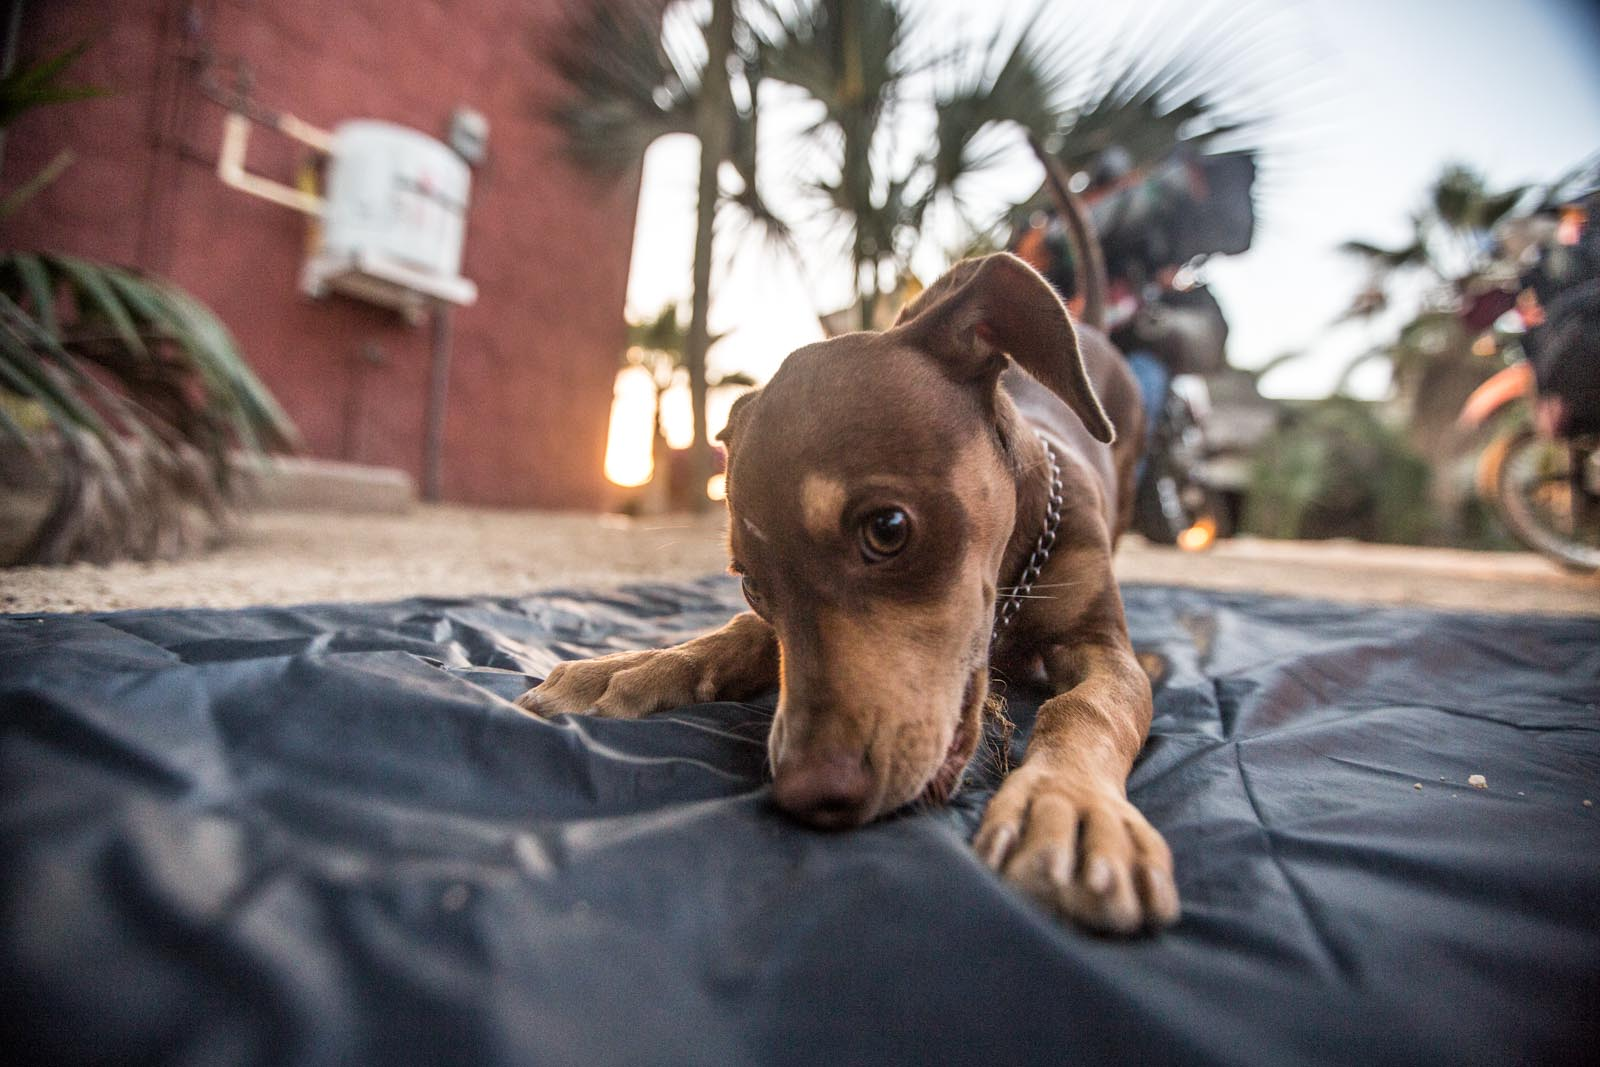 Vato, the little crazed puppy that played with us at the surf camp in El Pescadero.